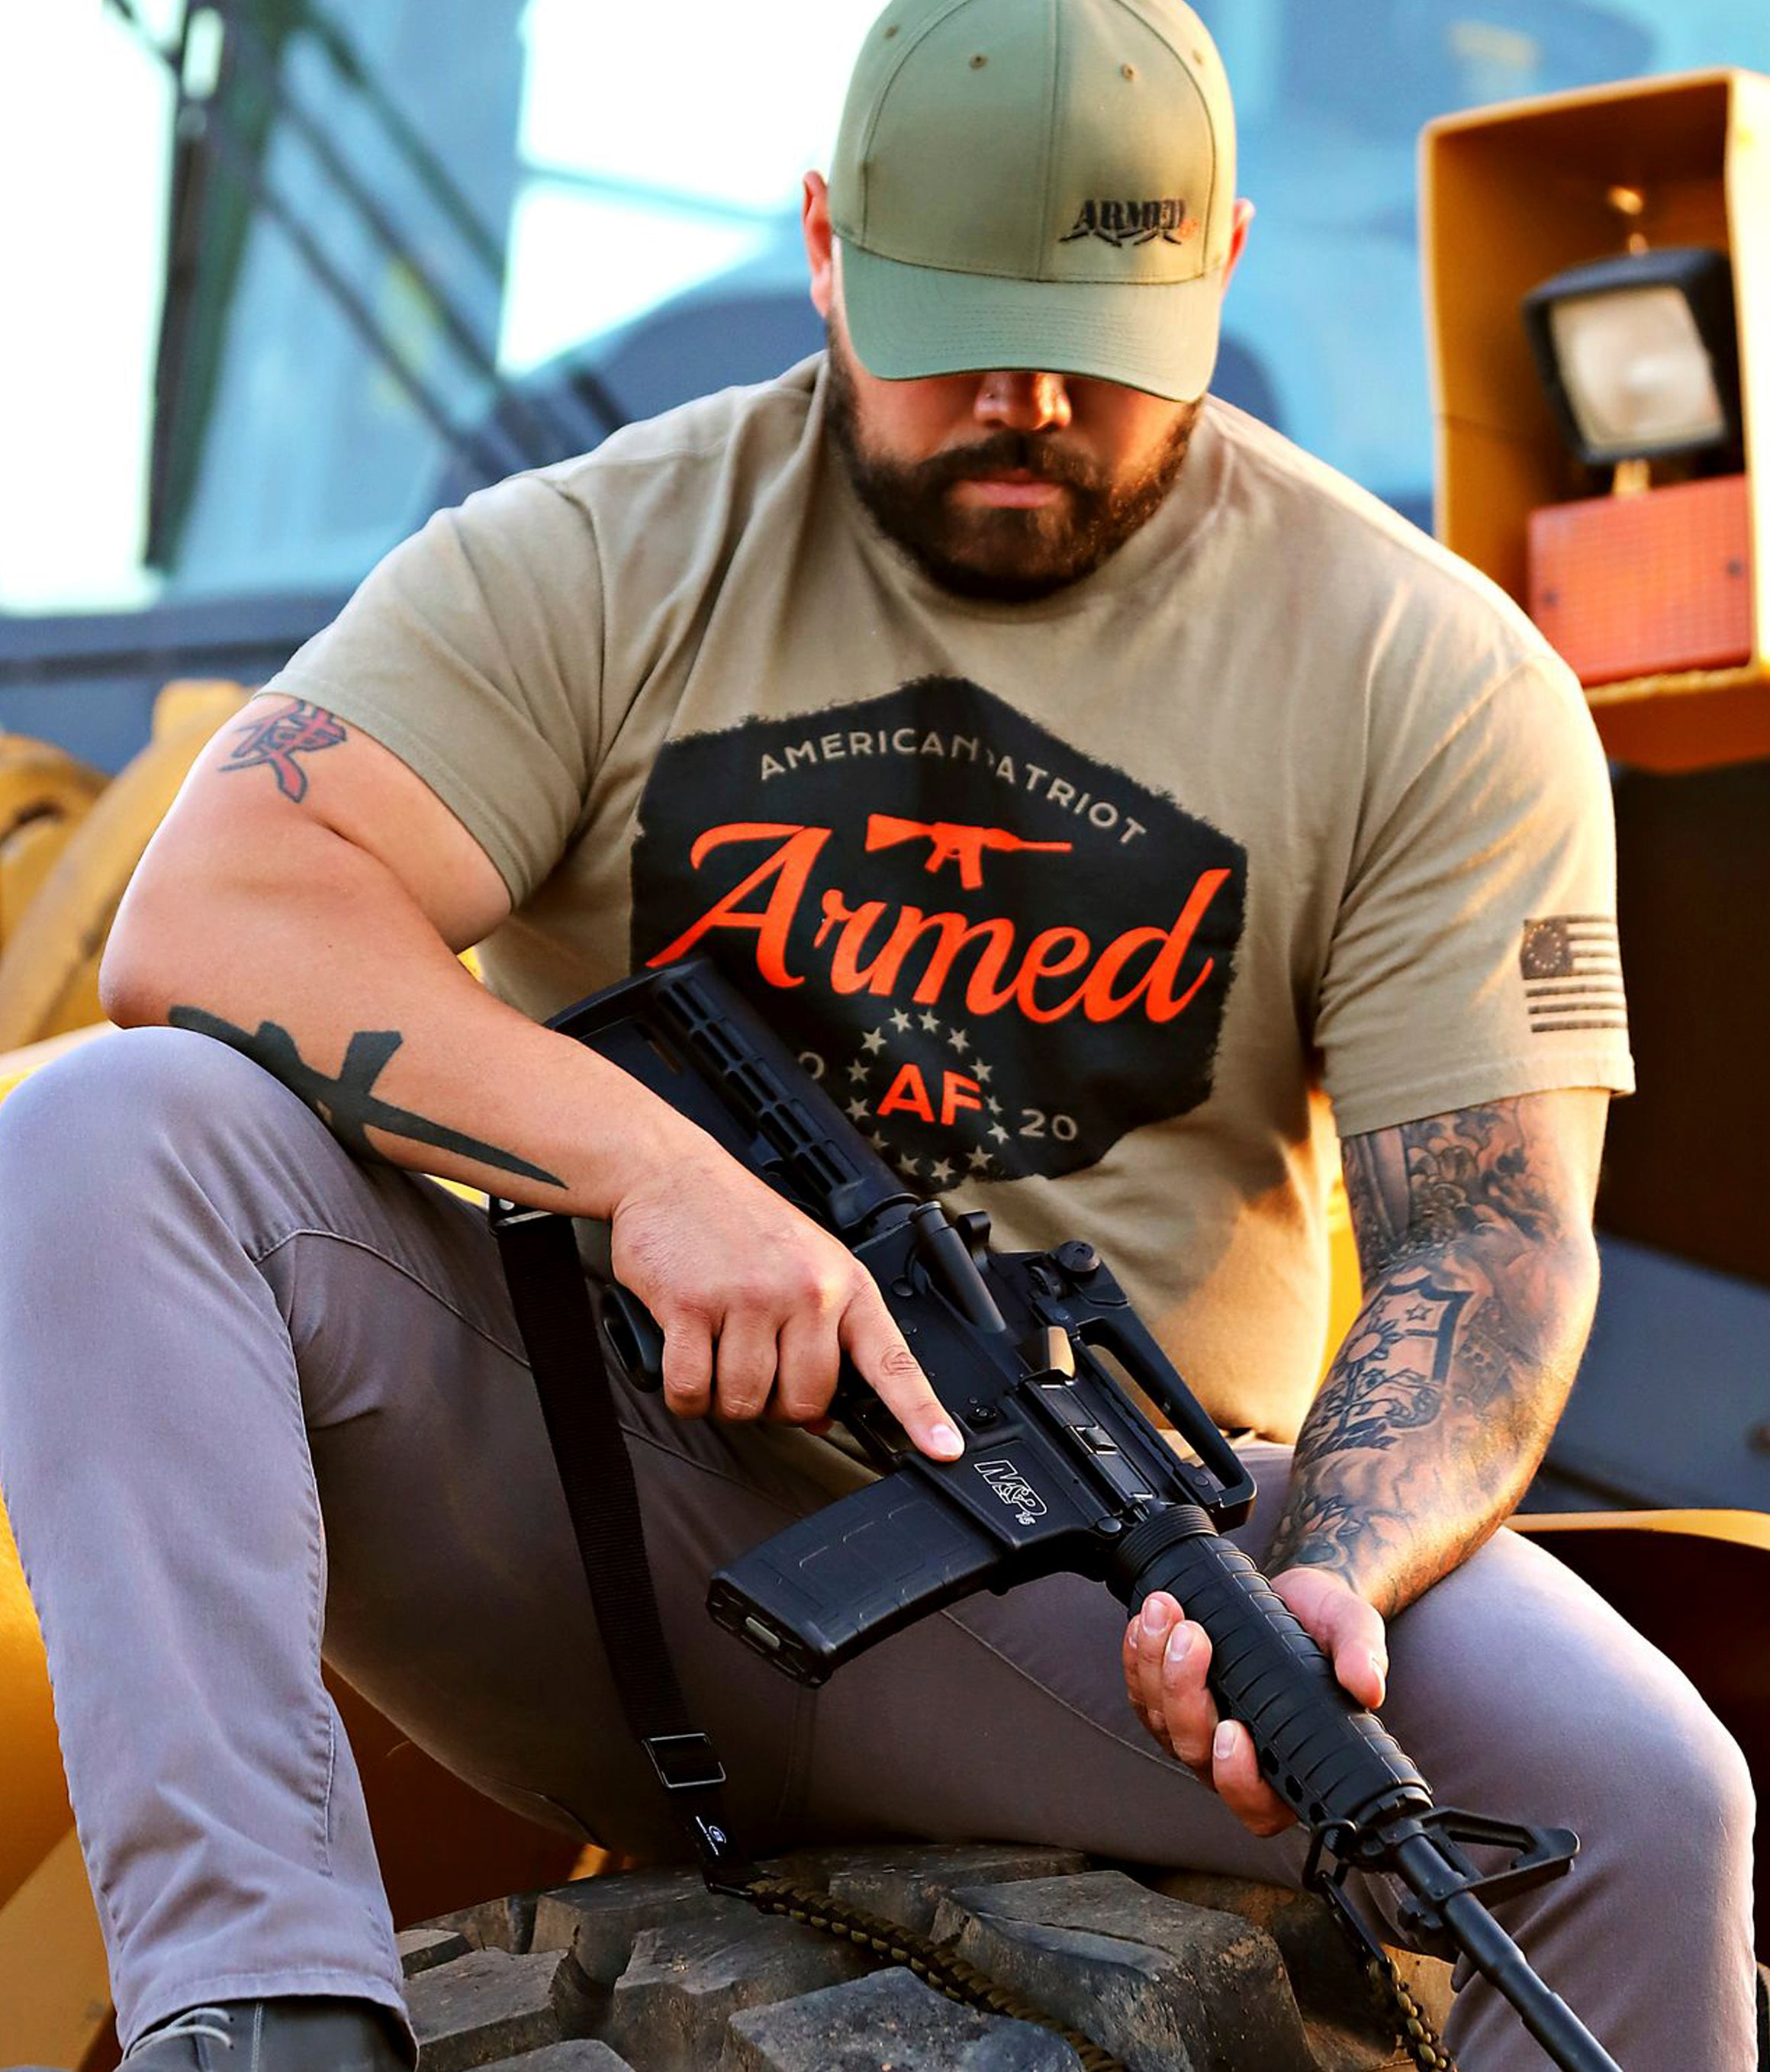 Armed AF t-shirt on man with hat